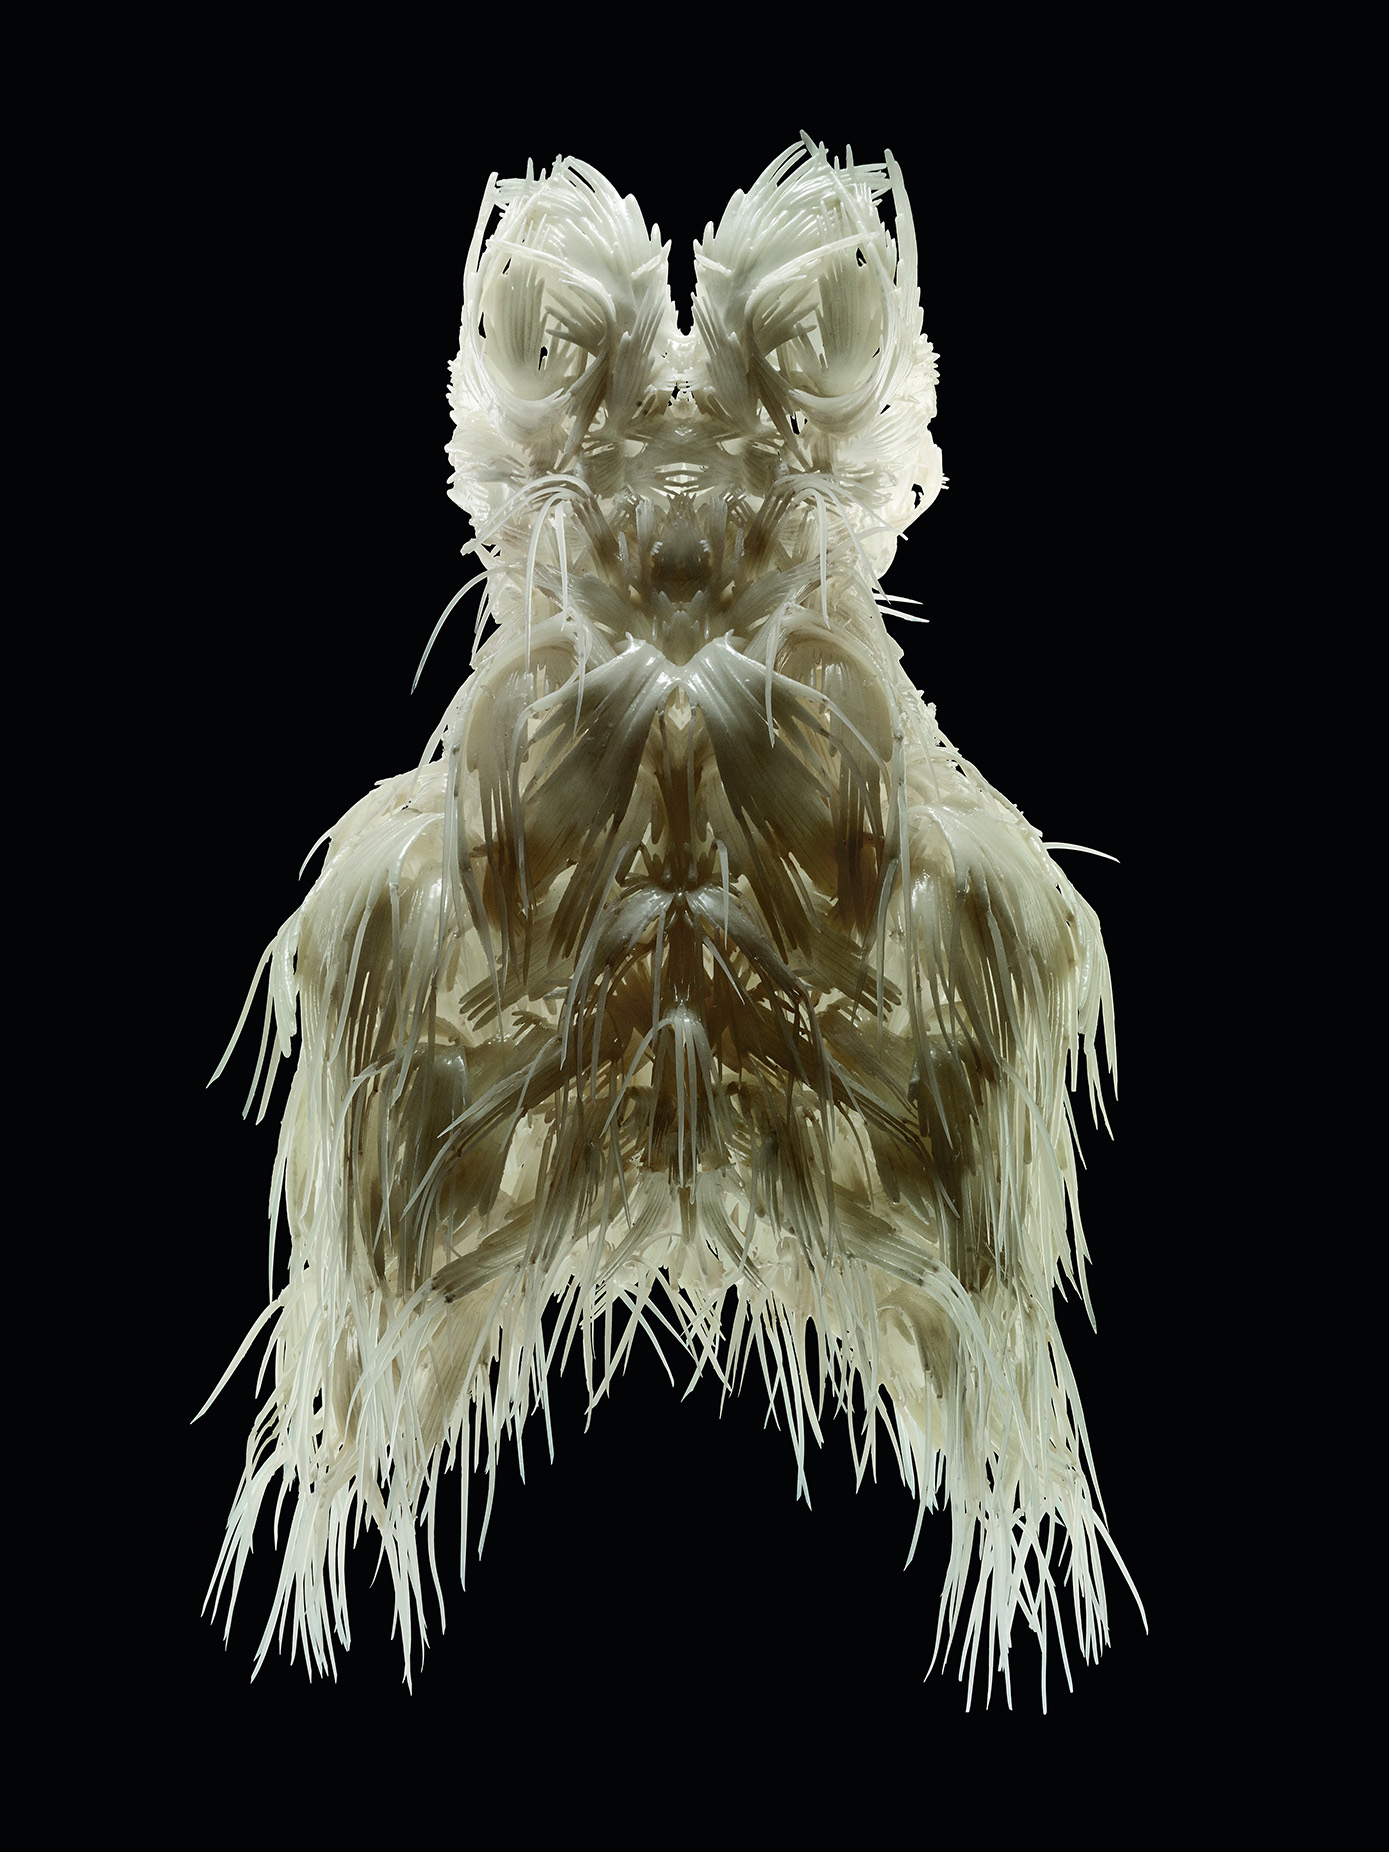 Iris van Herpen, Biopiracy, Dress, March 2014. Photo: Bart Oomes, No 6 Studios. © Iris van Herpen.